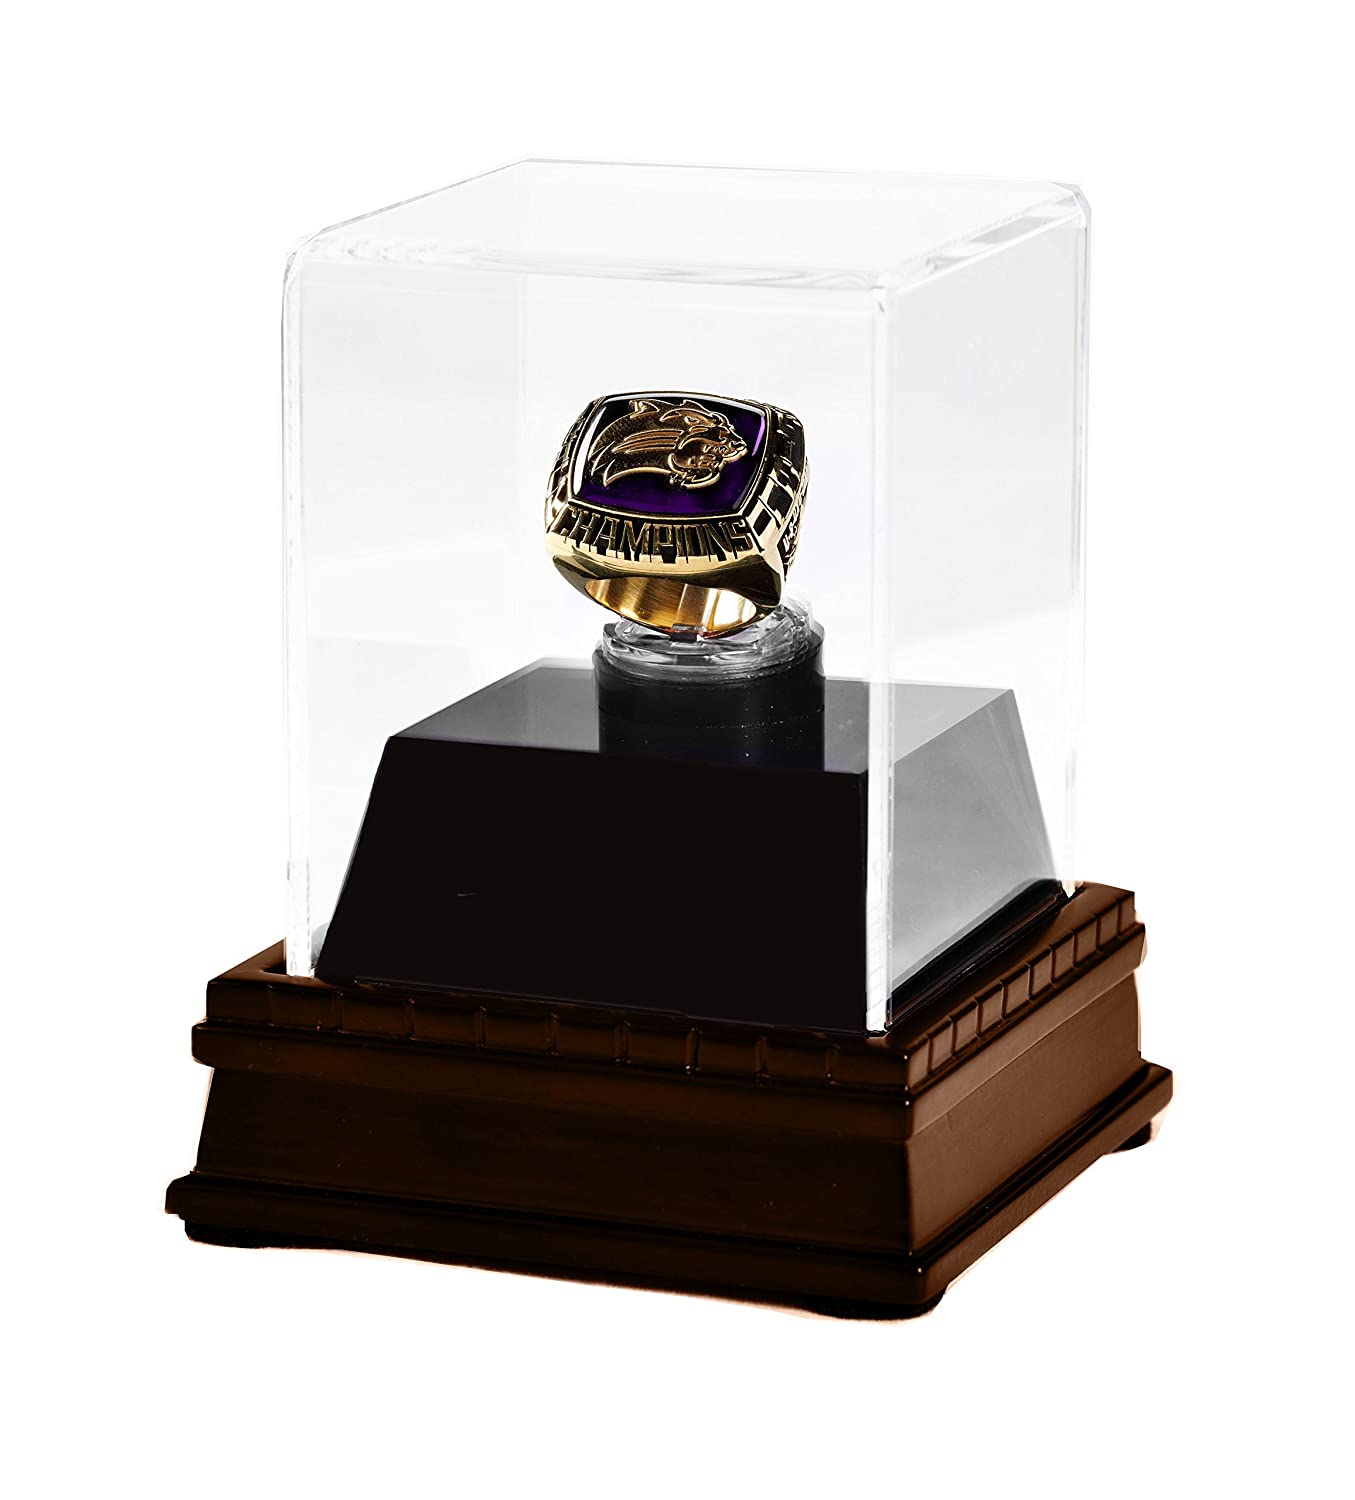 Championship Ring Display Case Acrylic Wood Box W Option For Personalized Engraving